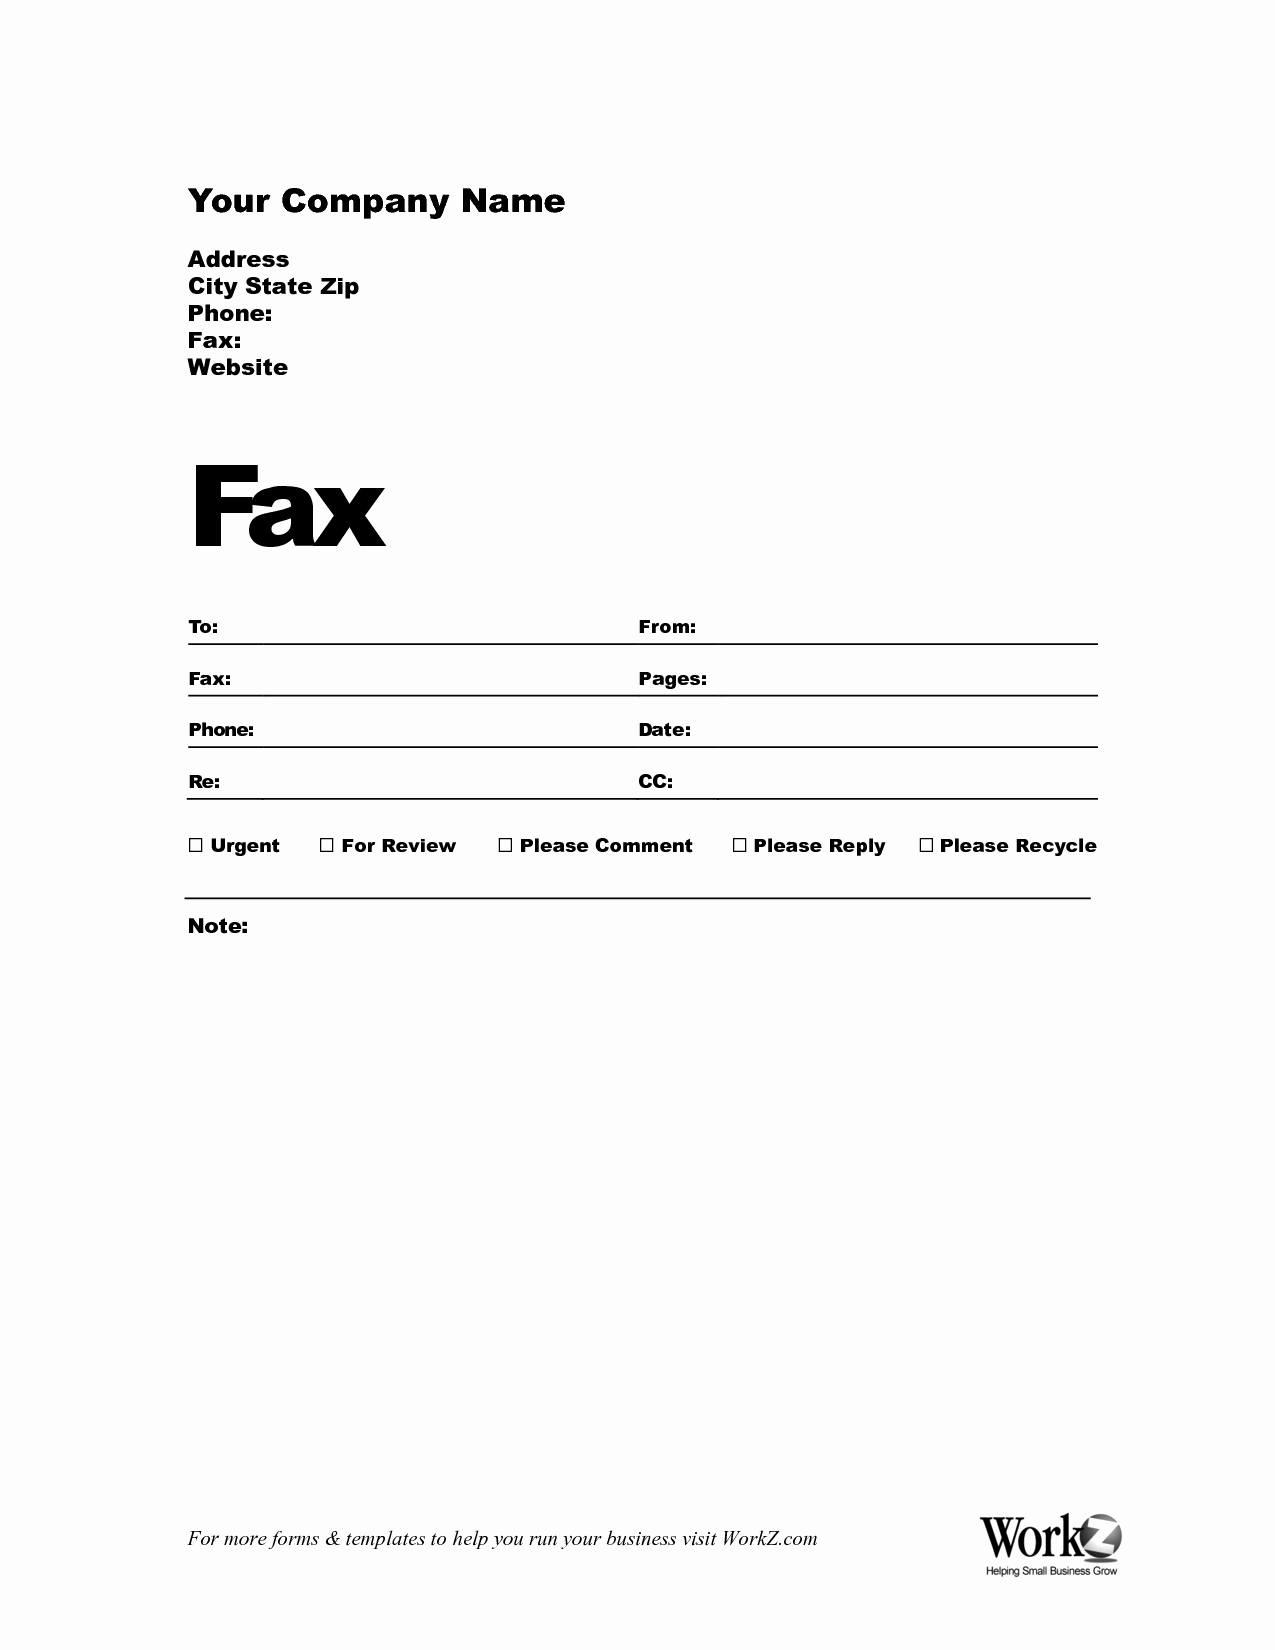 Cover Letter for A Fax Inspirational Free Fax Cover Sheet Template Bamboodownunder